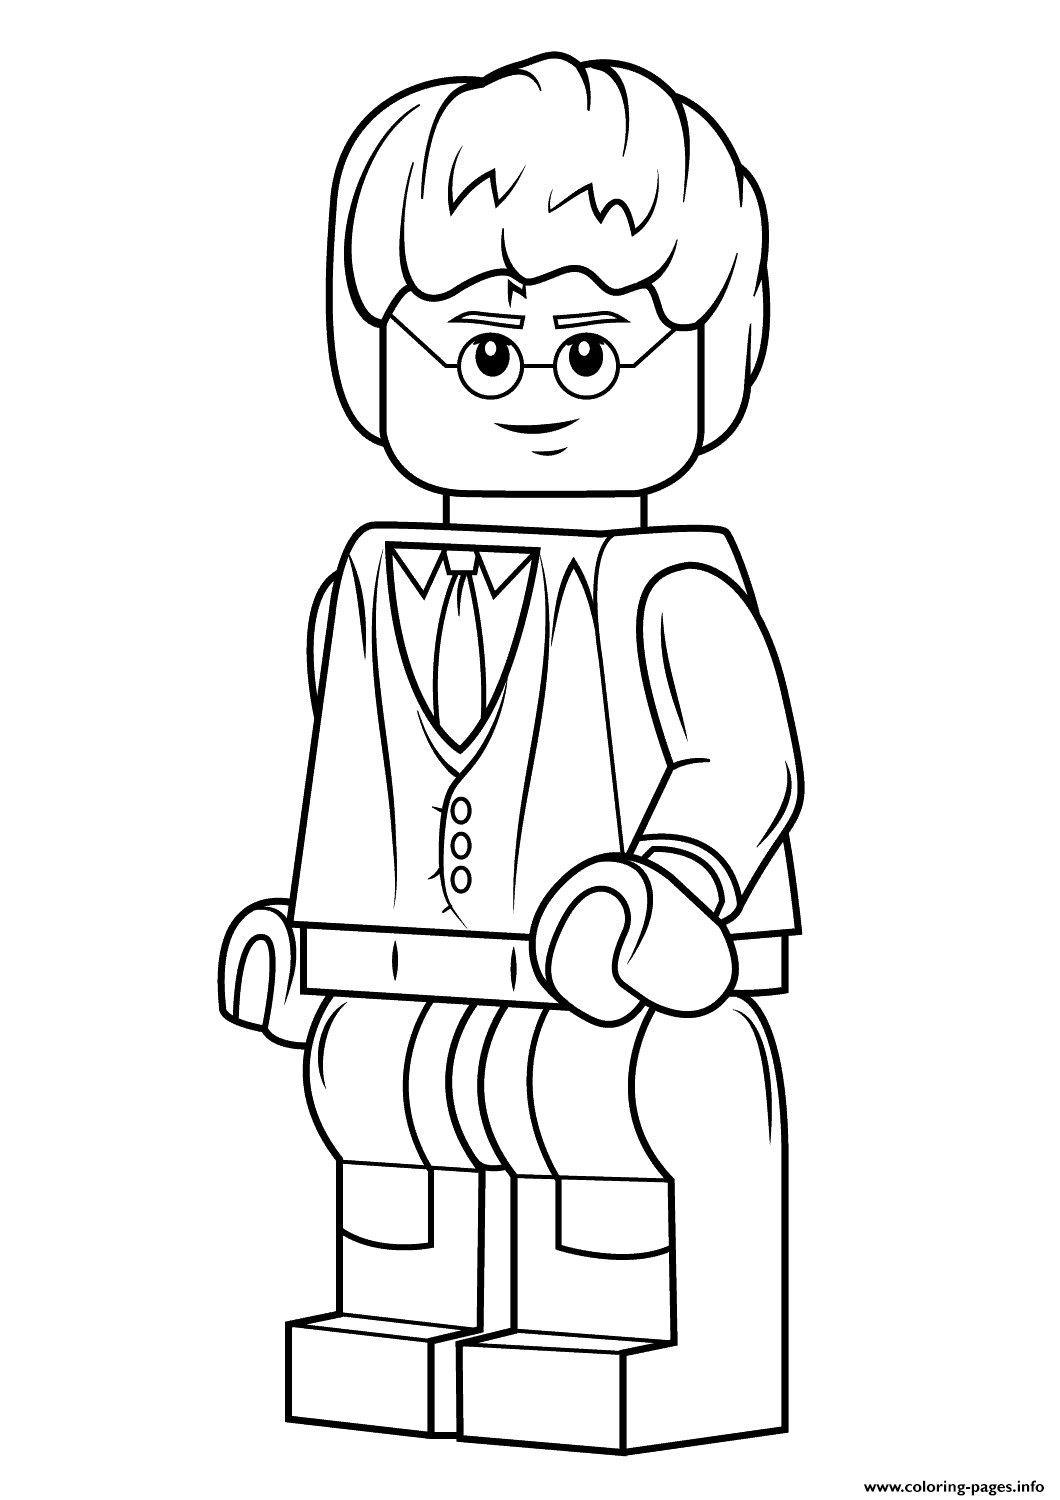 lego harry potter Coloring pages Printable Easy Drawings Of Tom And Jerry